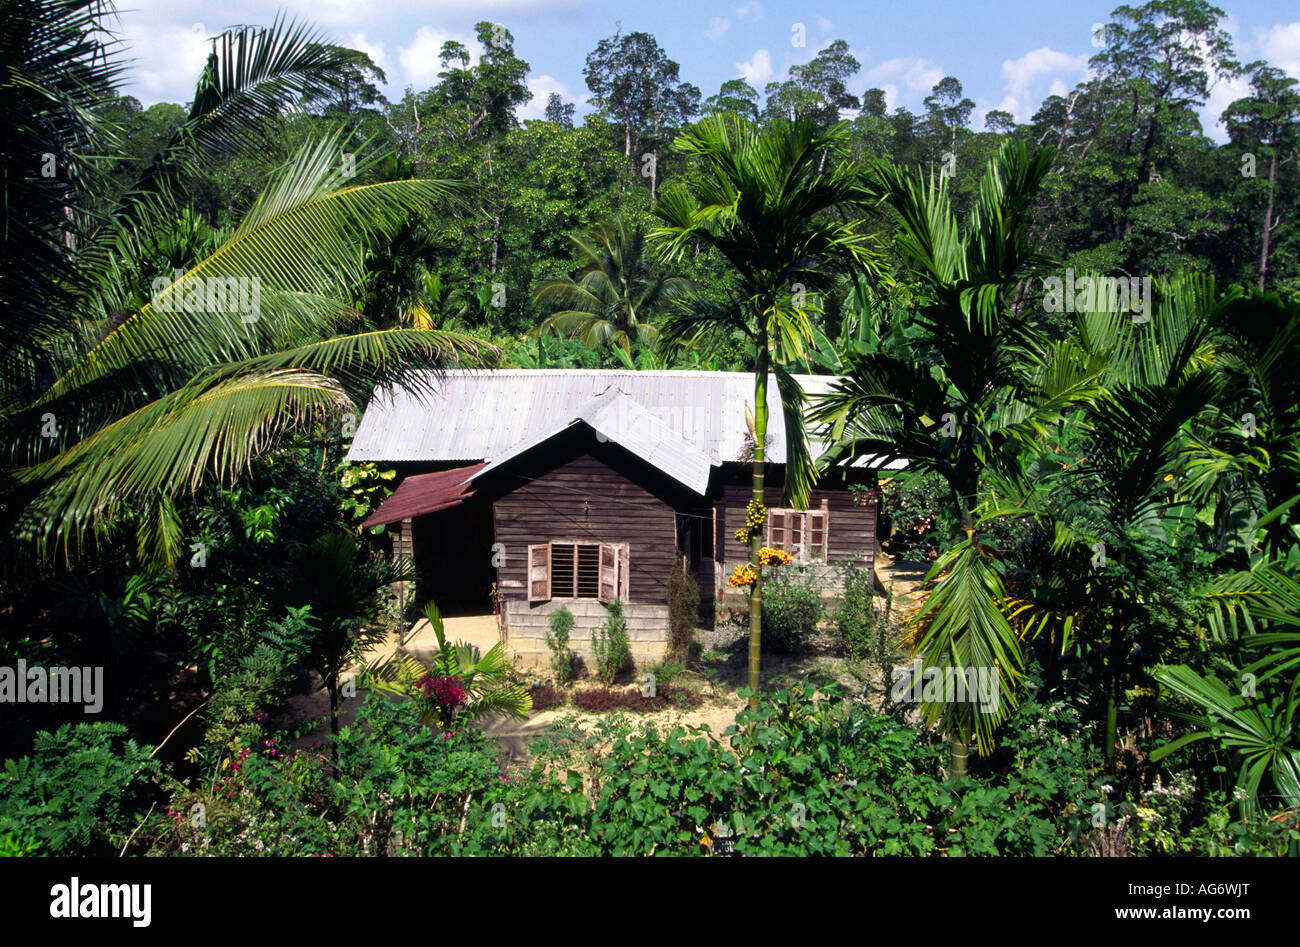 India middle andaman island betapur small house in verdant for Garden house in india